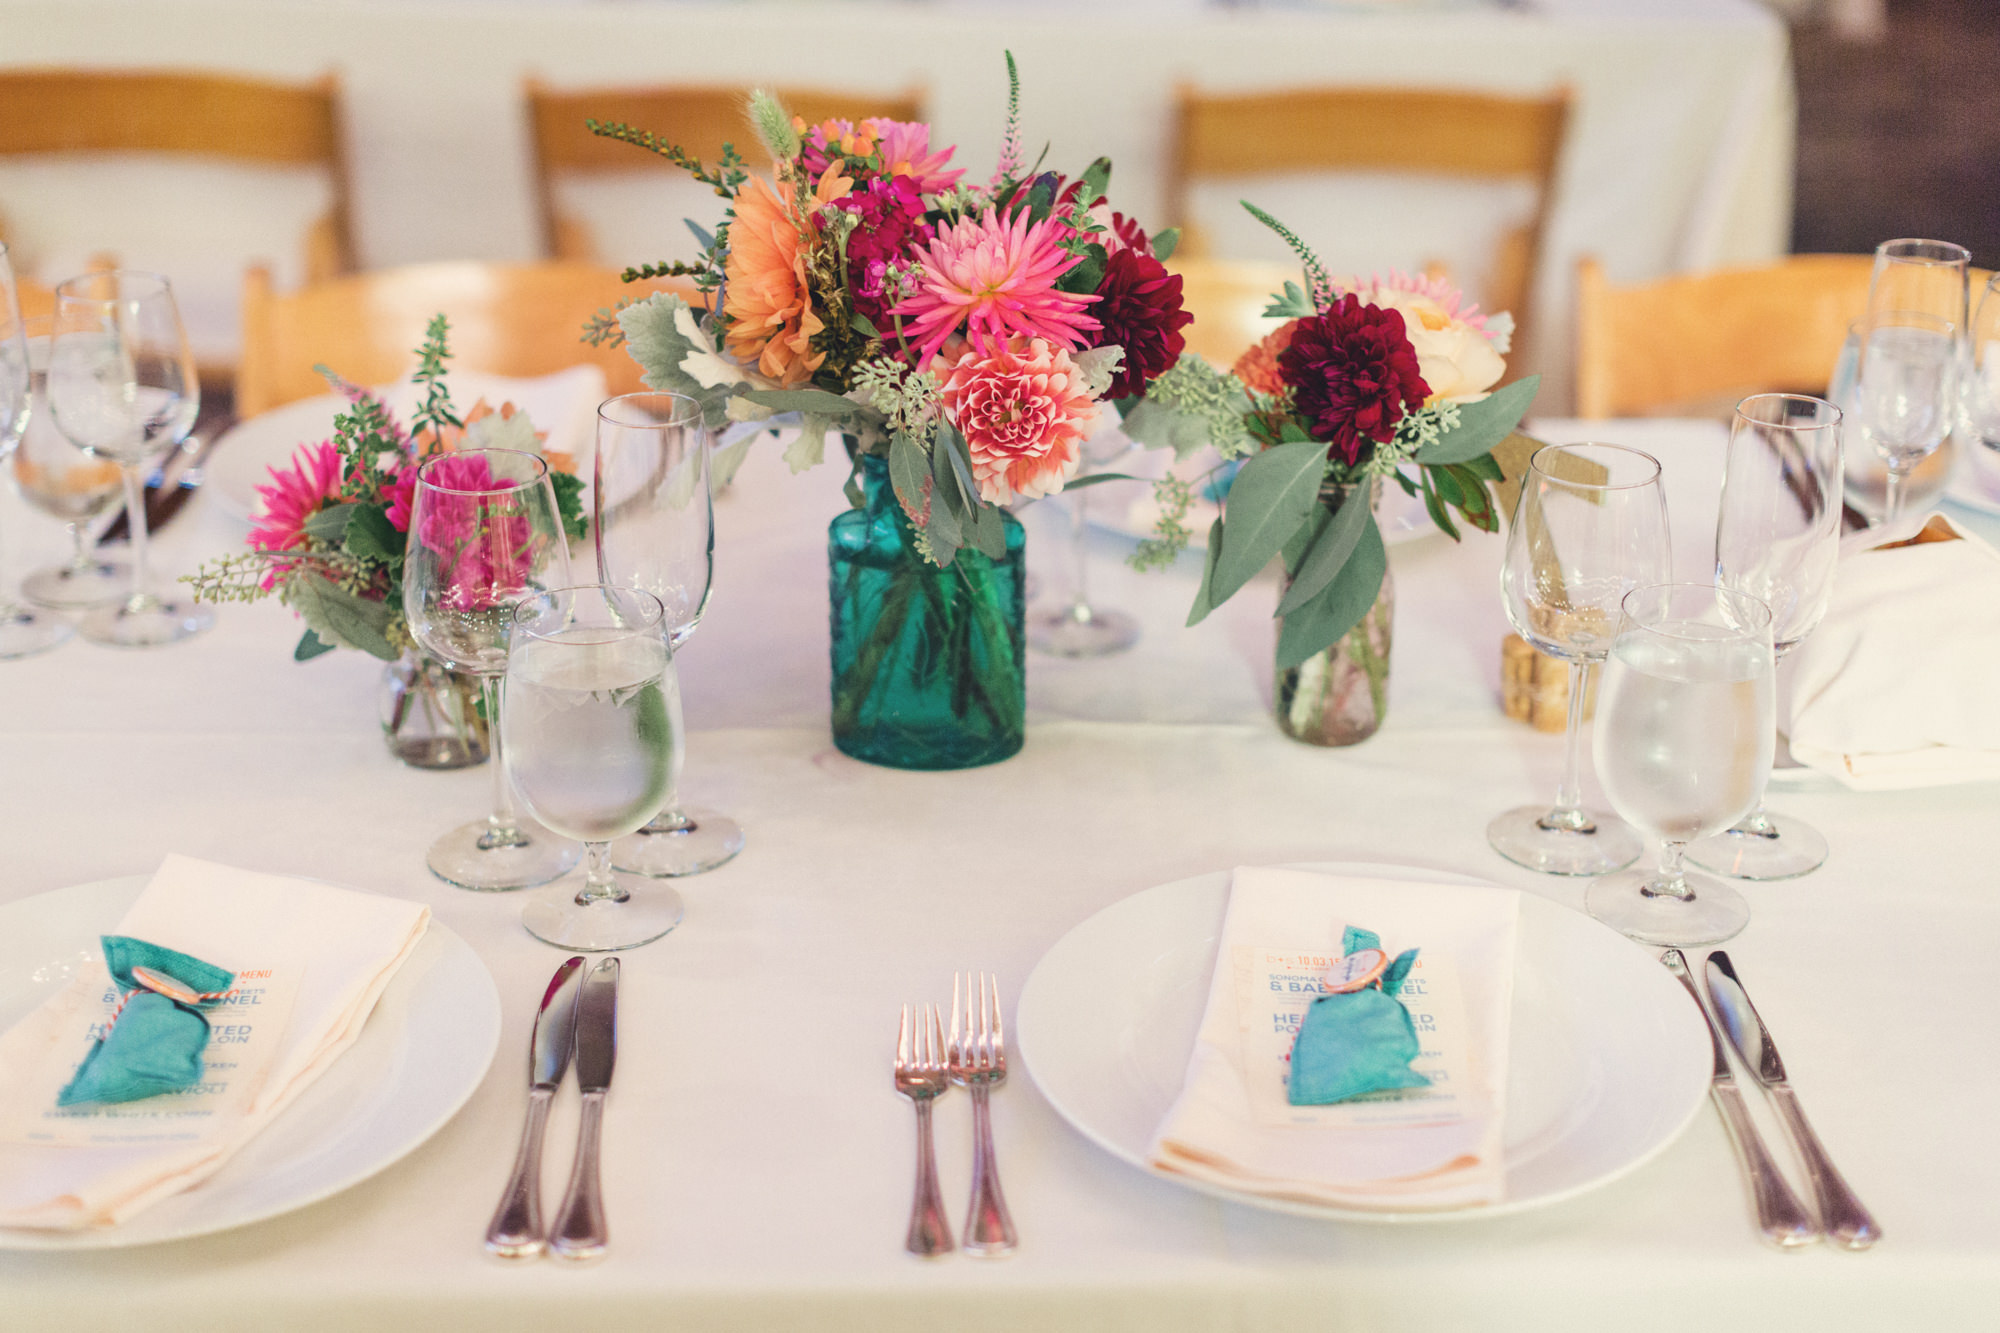 Toby's Feed Barn Wedding ©Anne-Claire Brun 124